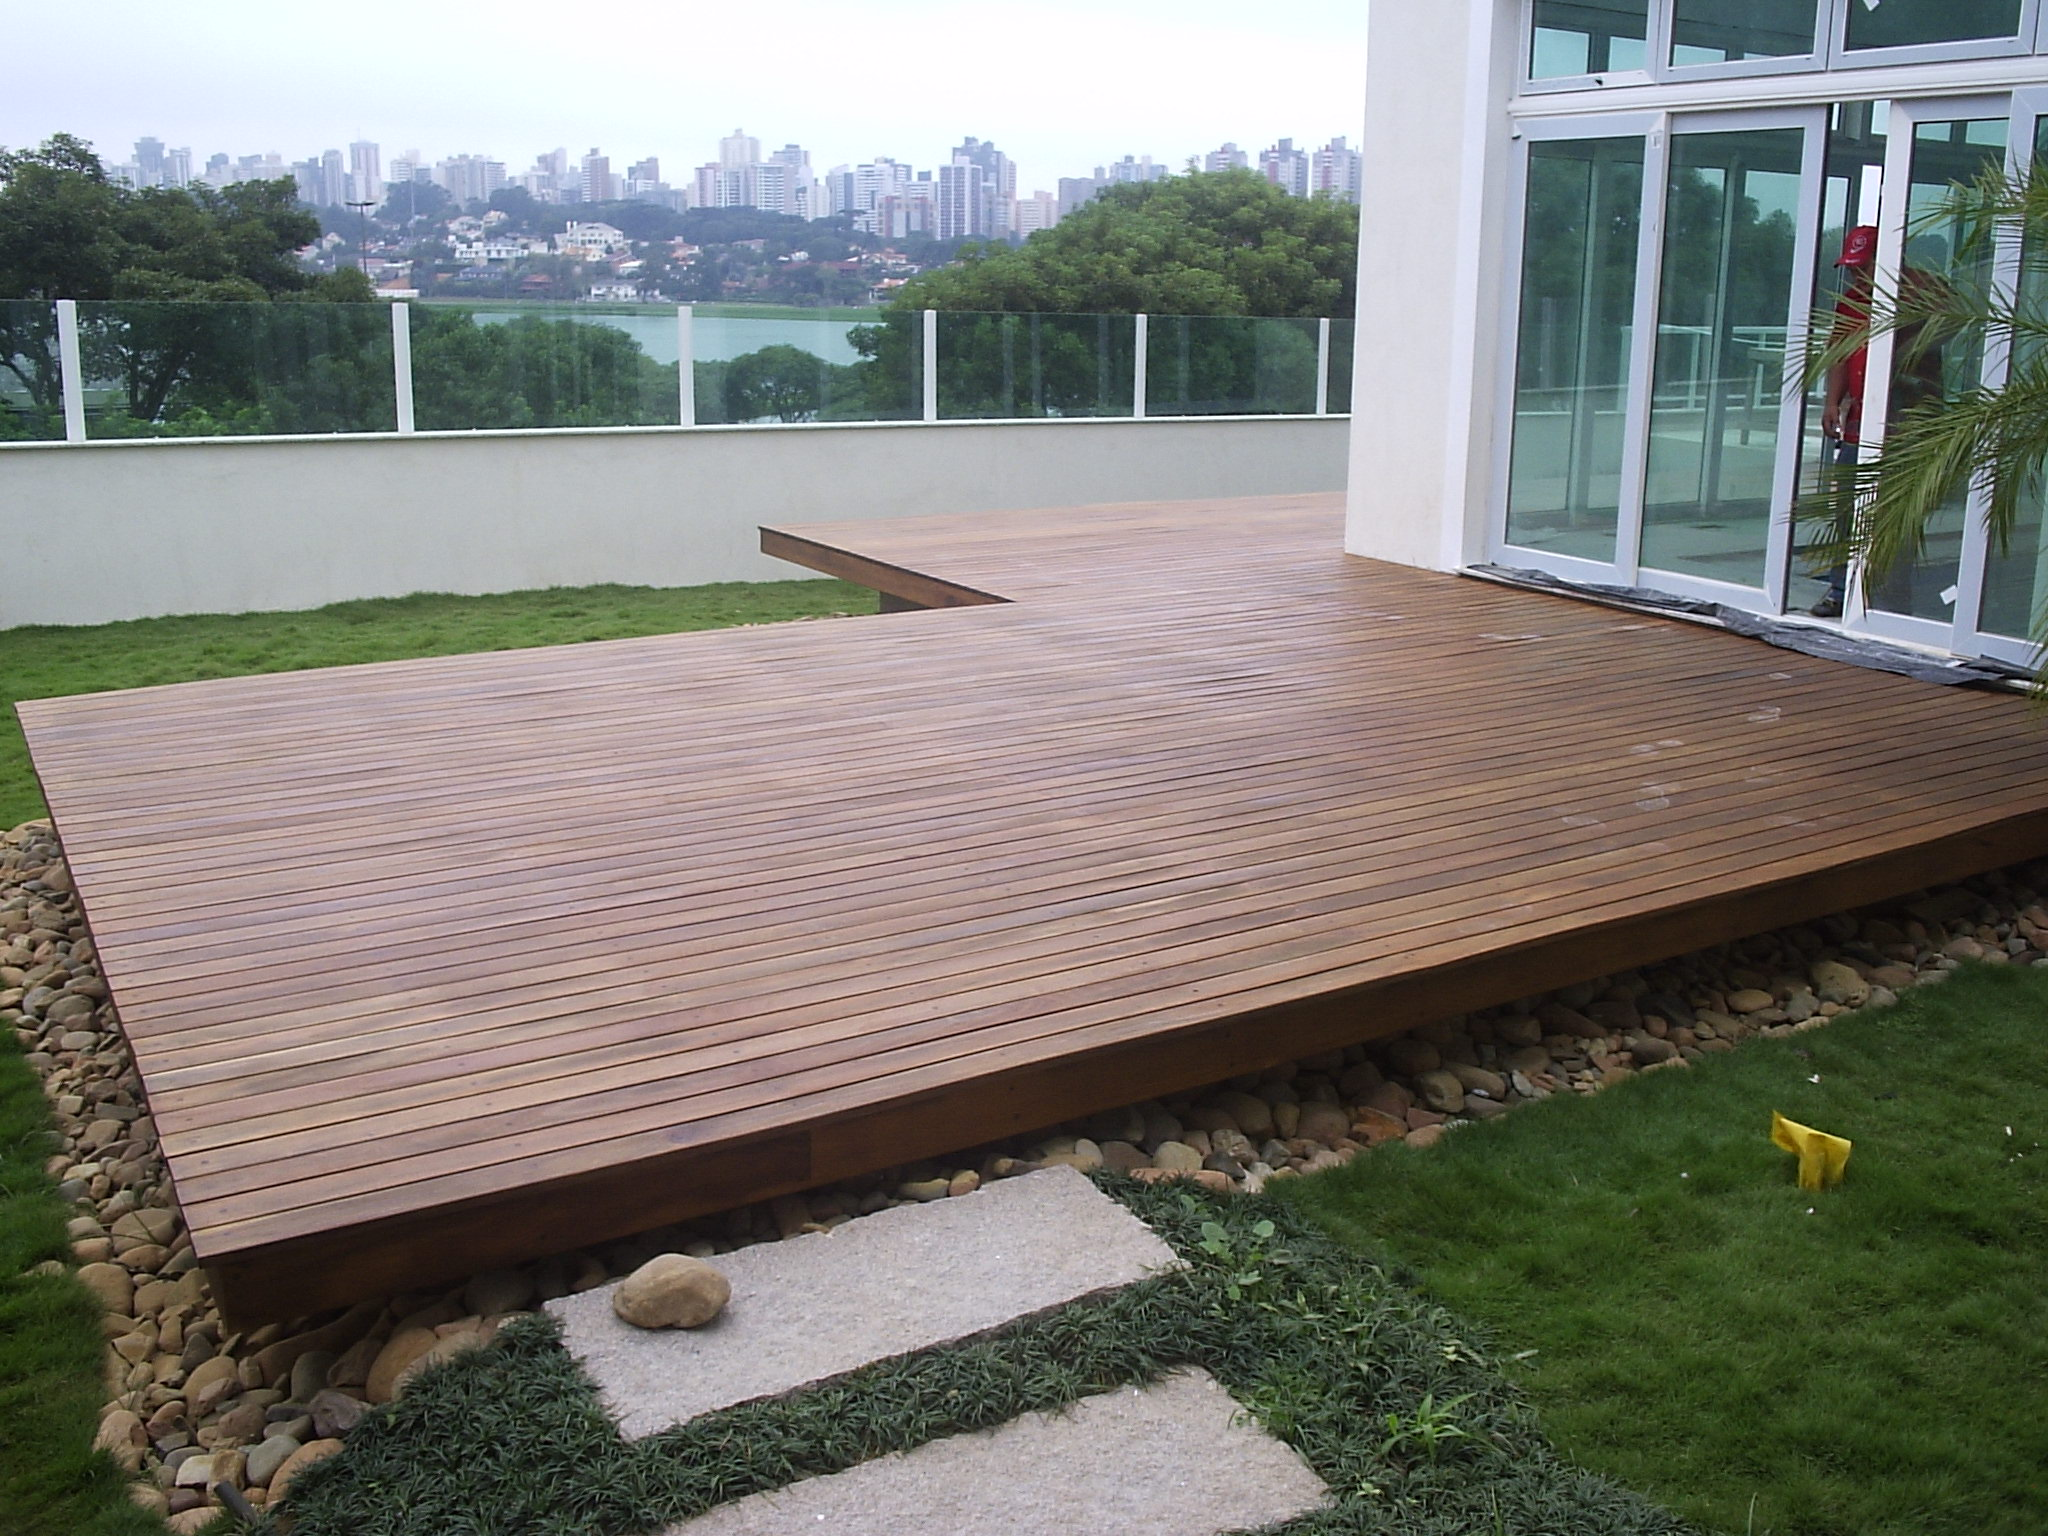 Deck de madeira para jardim wdicas wdicas for Simple platform deck plans